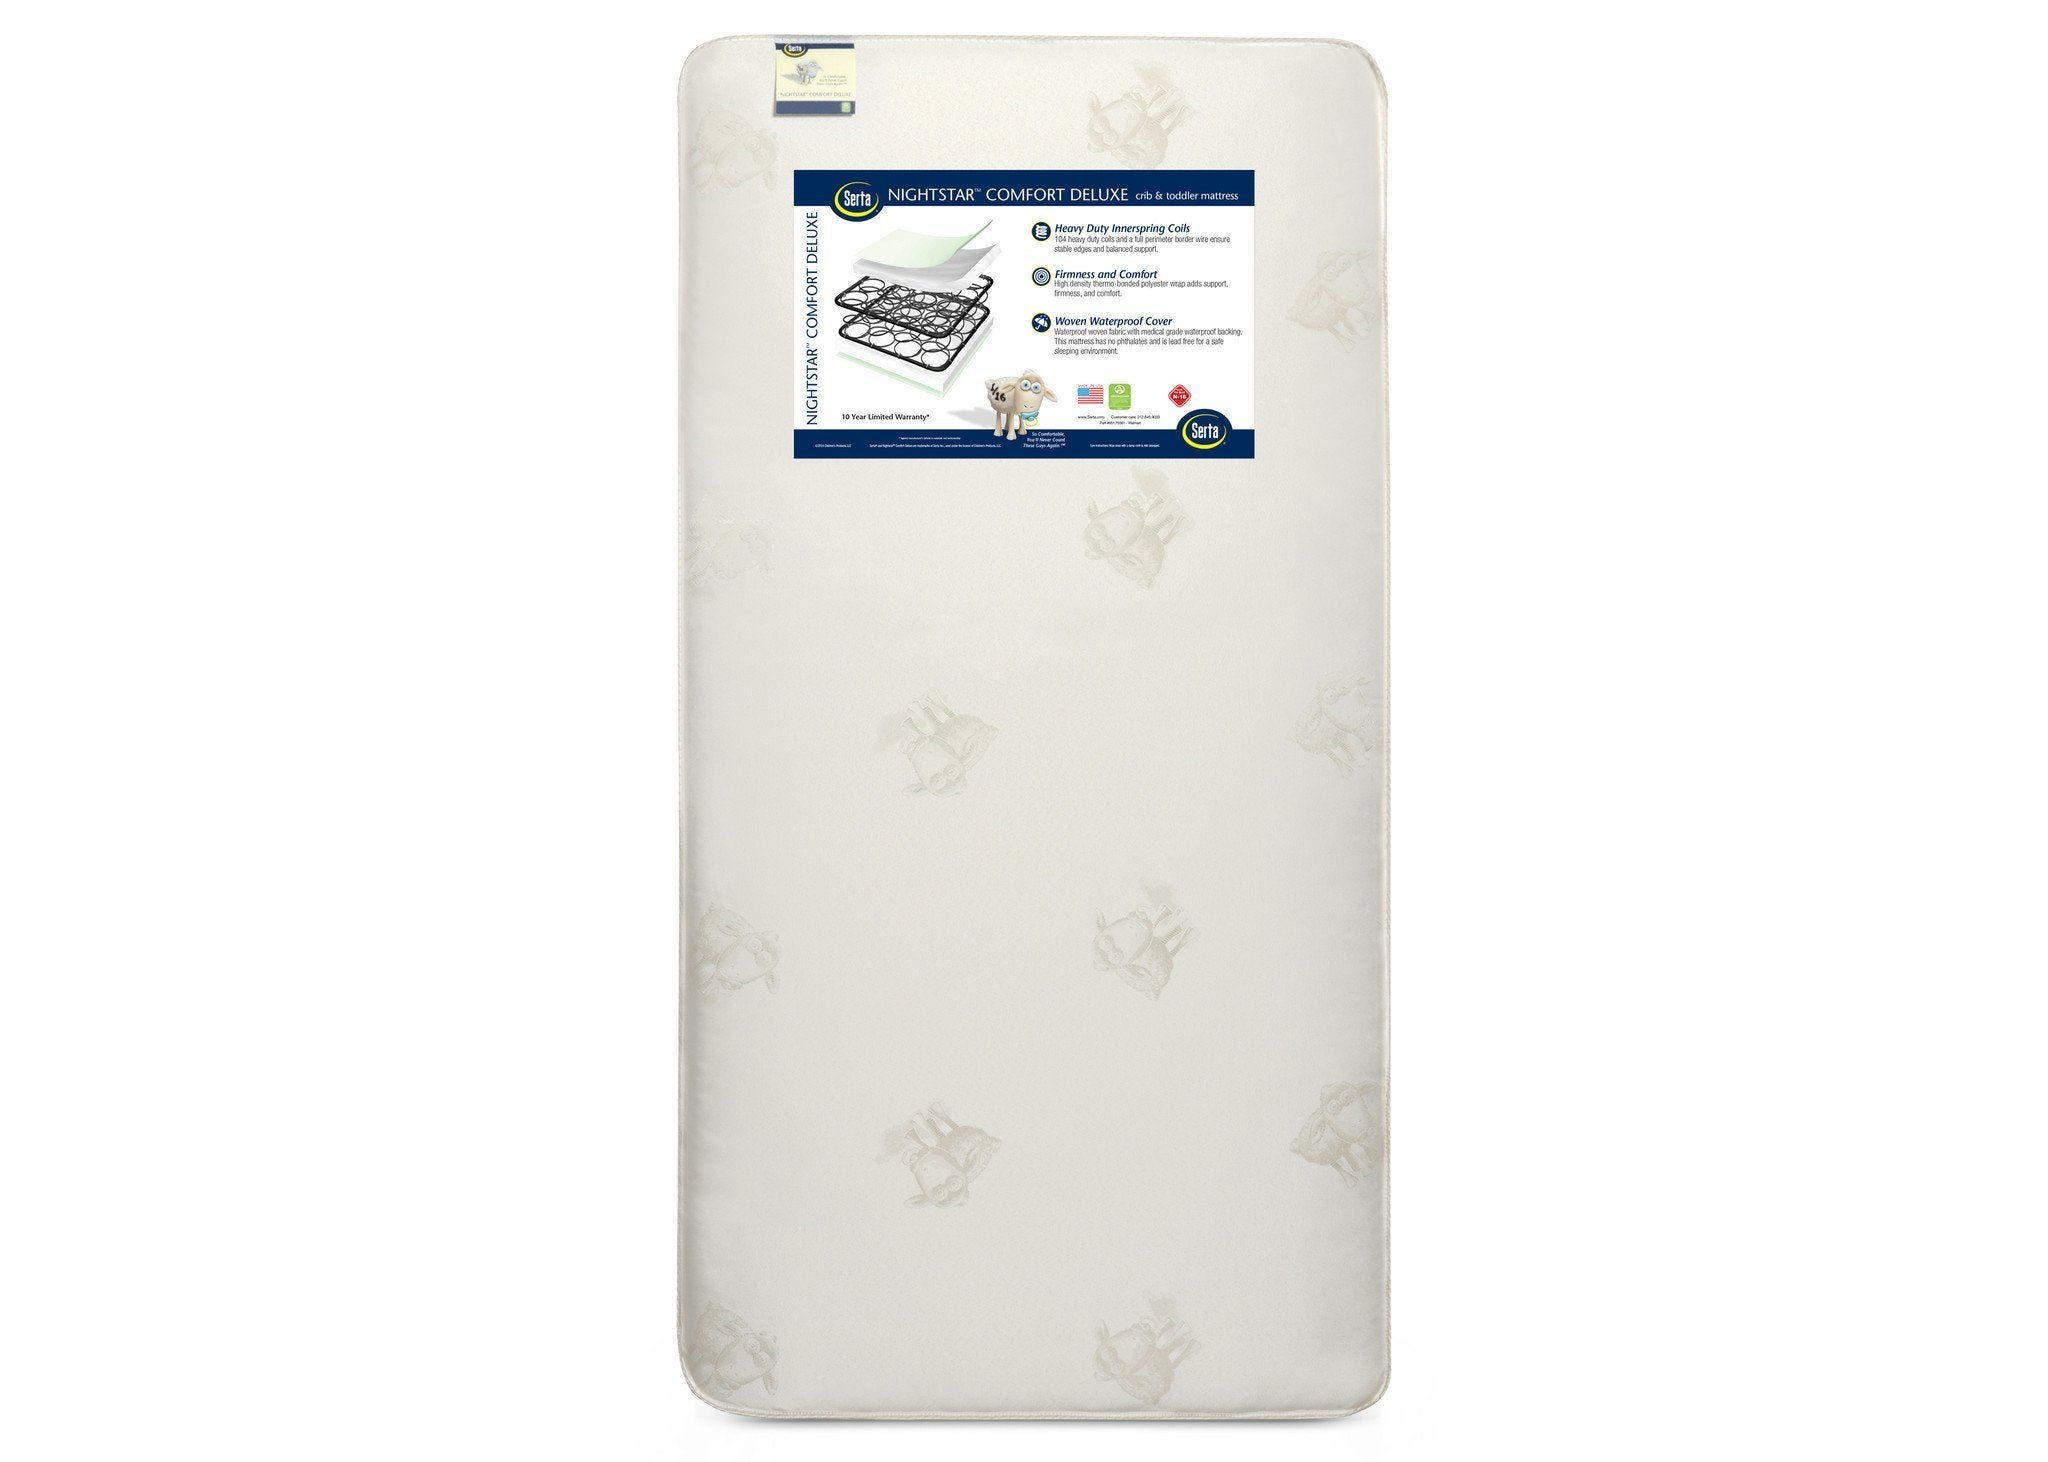 "Serta Nightstarâ""¢ Comfort Deluxe Crib & Toddler Mattress Front View a4a No Color (NO)"